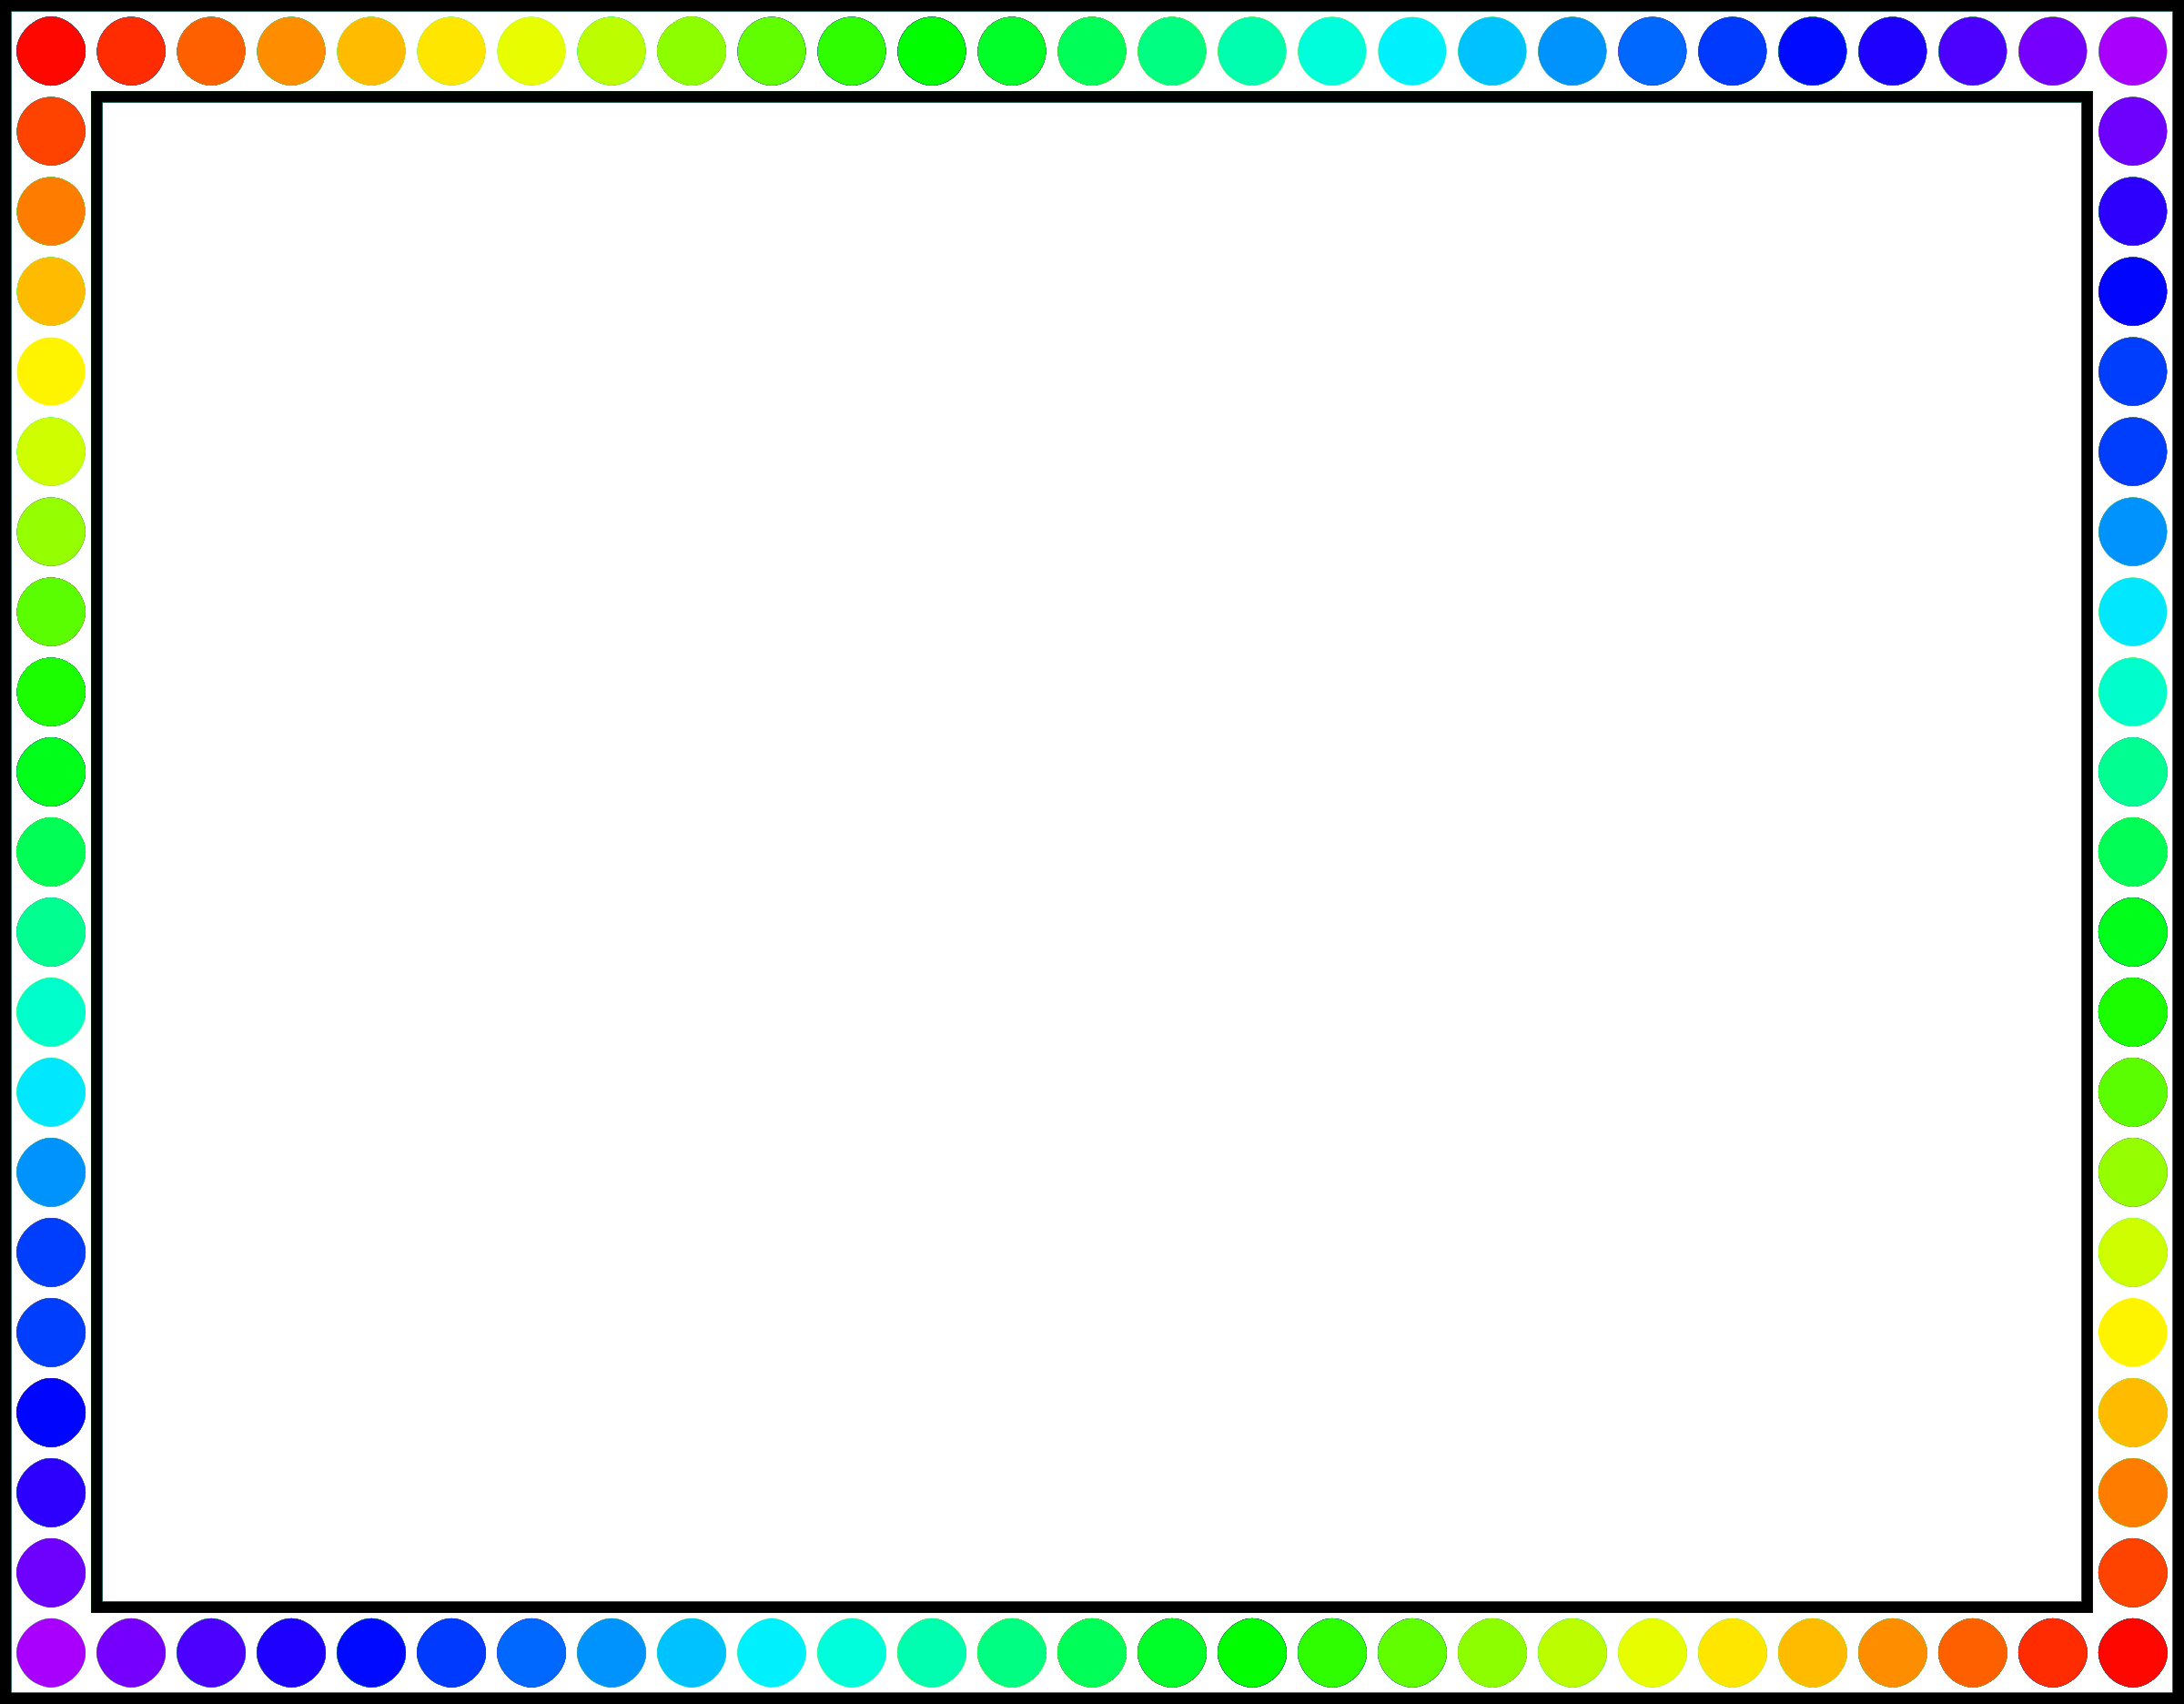 Border frame png. Free icons and backgrounds